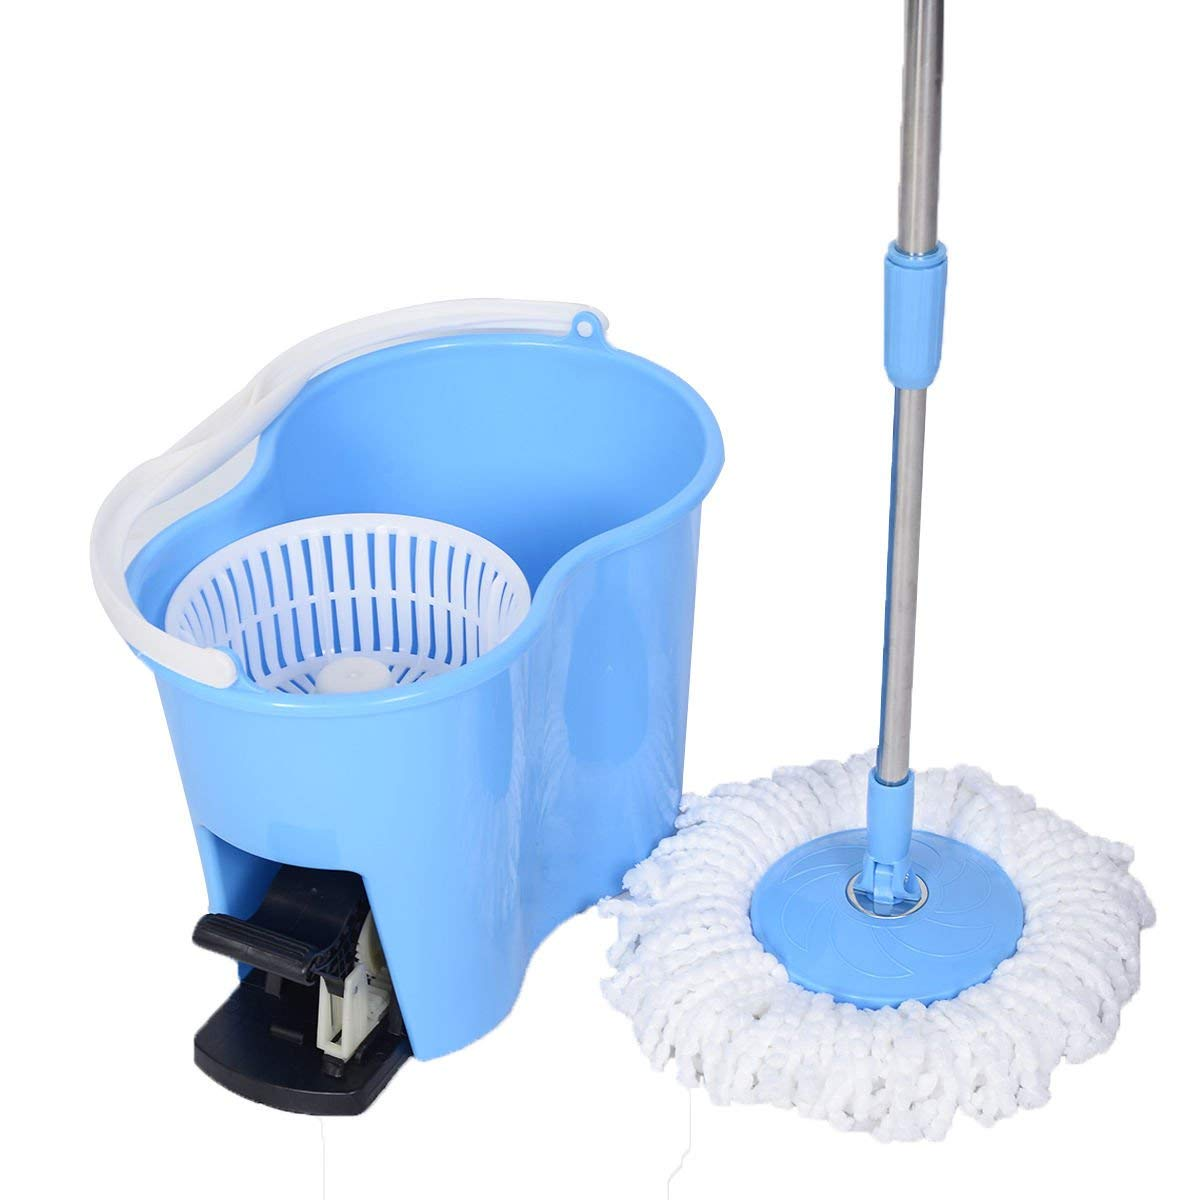 Super buy Microfiber Mop Bucket